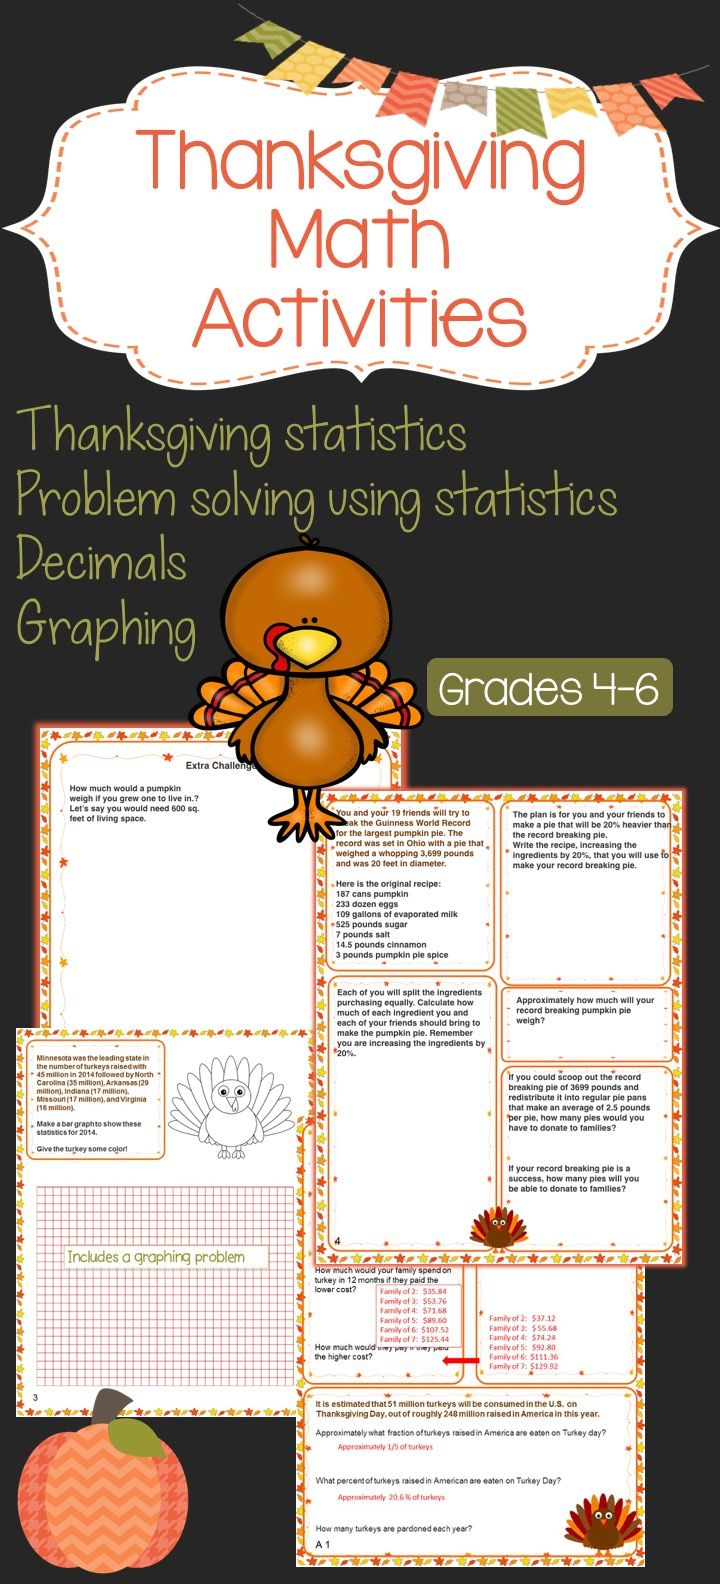 Real World Statistics About Thanksgiving Provide A Fun And Engaging Topic For Stude Thanksgiving Math Activities Thanksgiving Math Worksheets Thanksgiving Math Reading eggs lesson 111